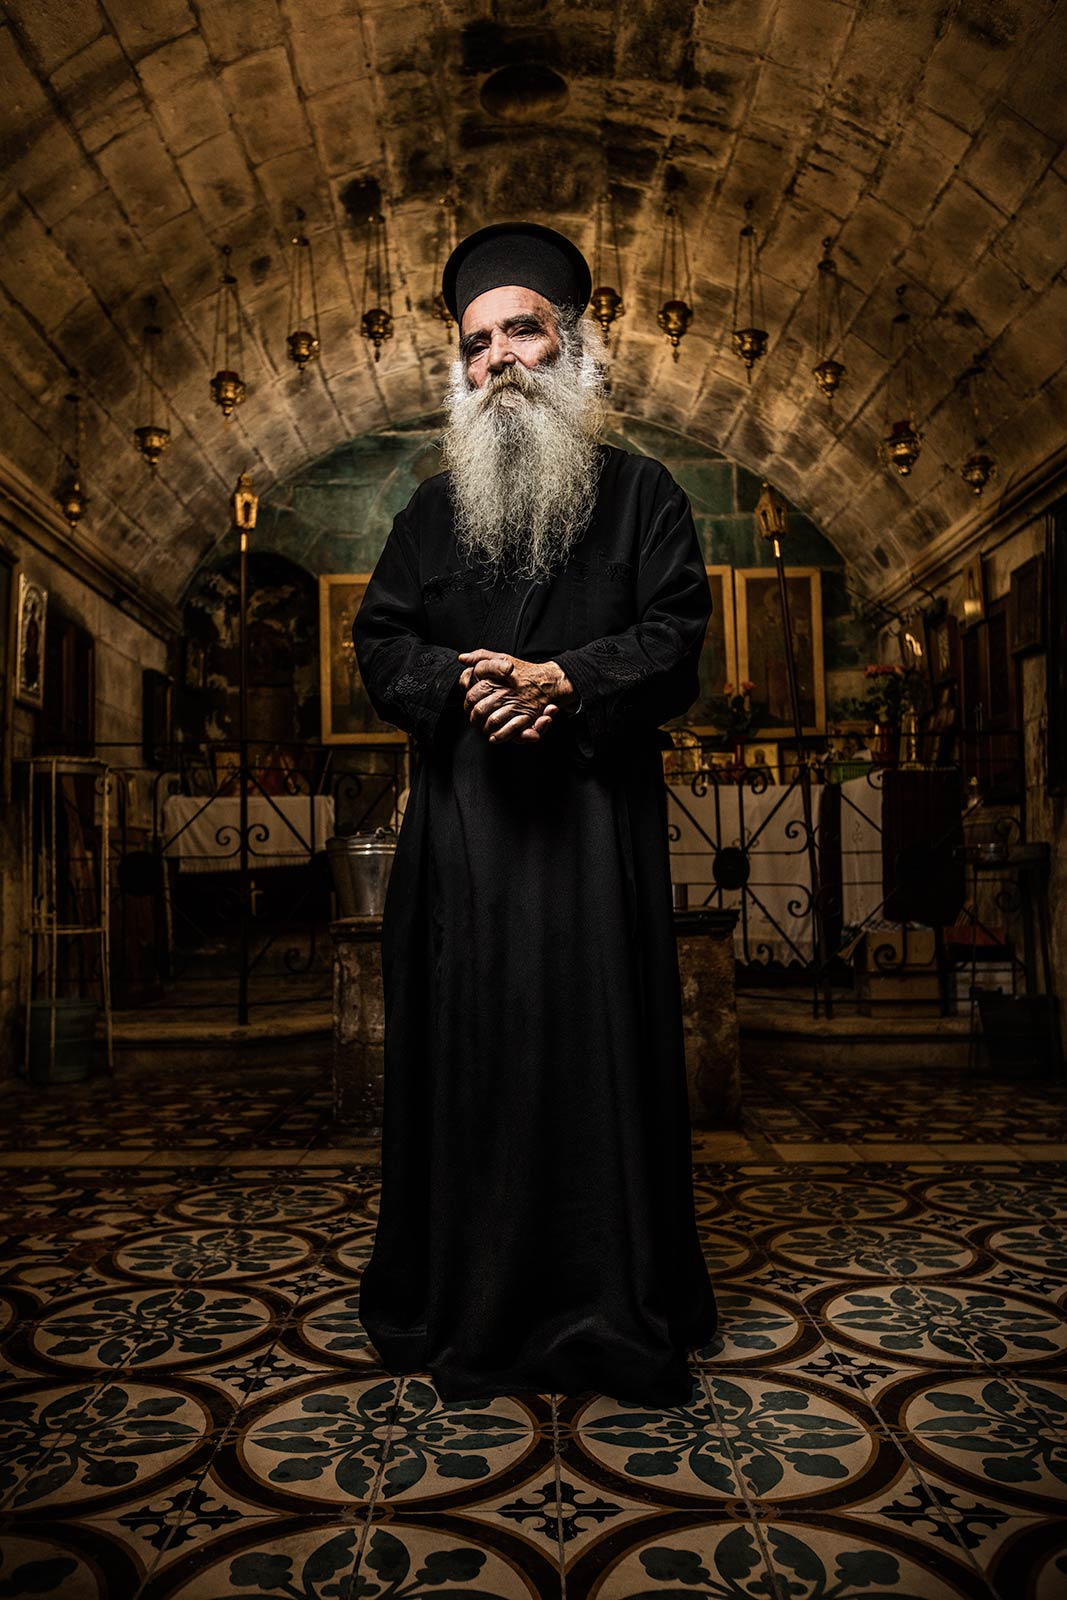 A dramatic moody portrait of a Greek Orthodox priest in Israel